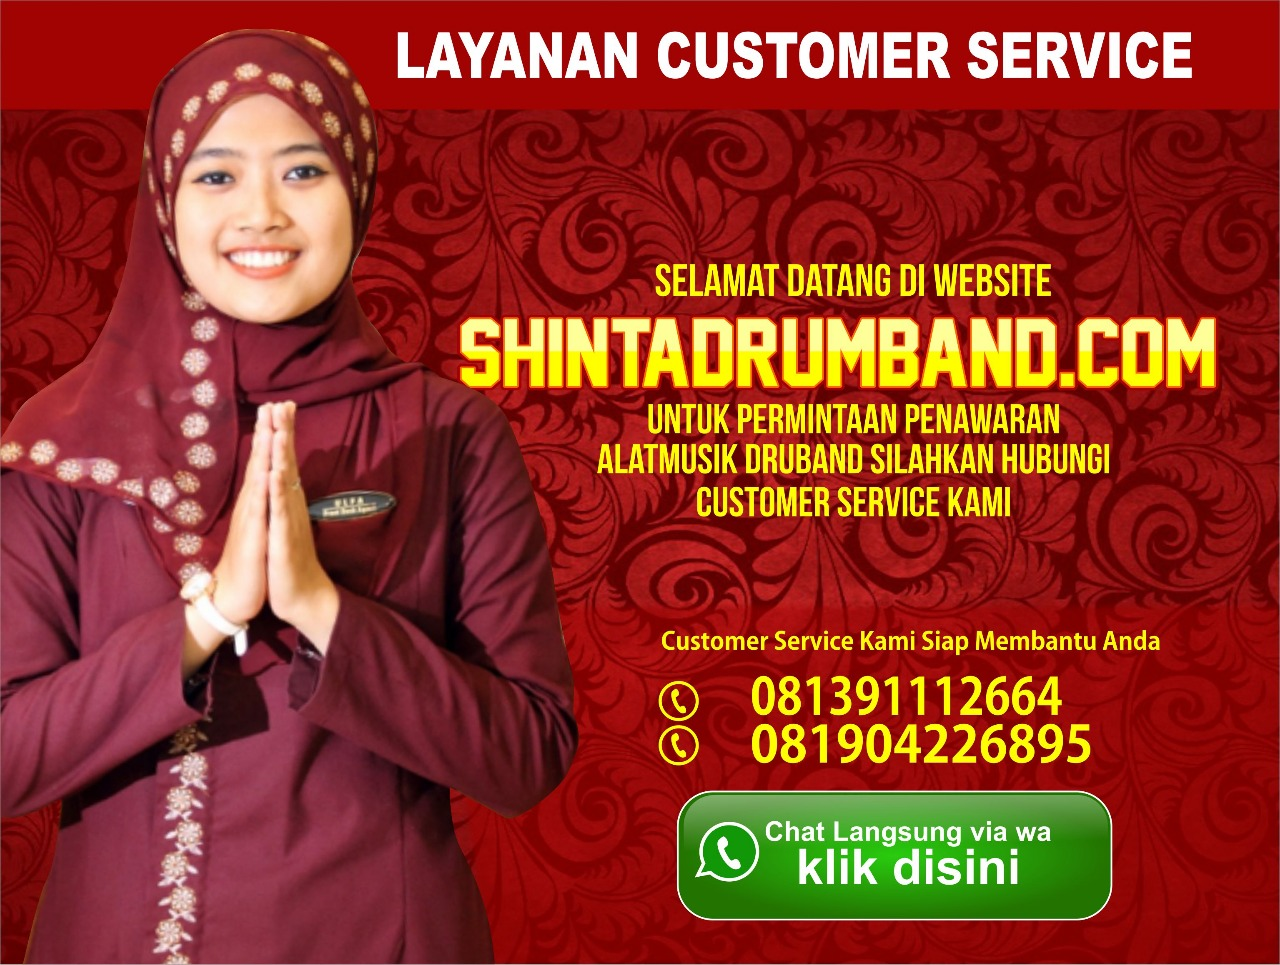 SHINTA Jual Alat Drumband SHINTA Marchingband SHINTA seragam Drumband SHINTA Pengrajin DRUMBAND